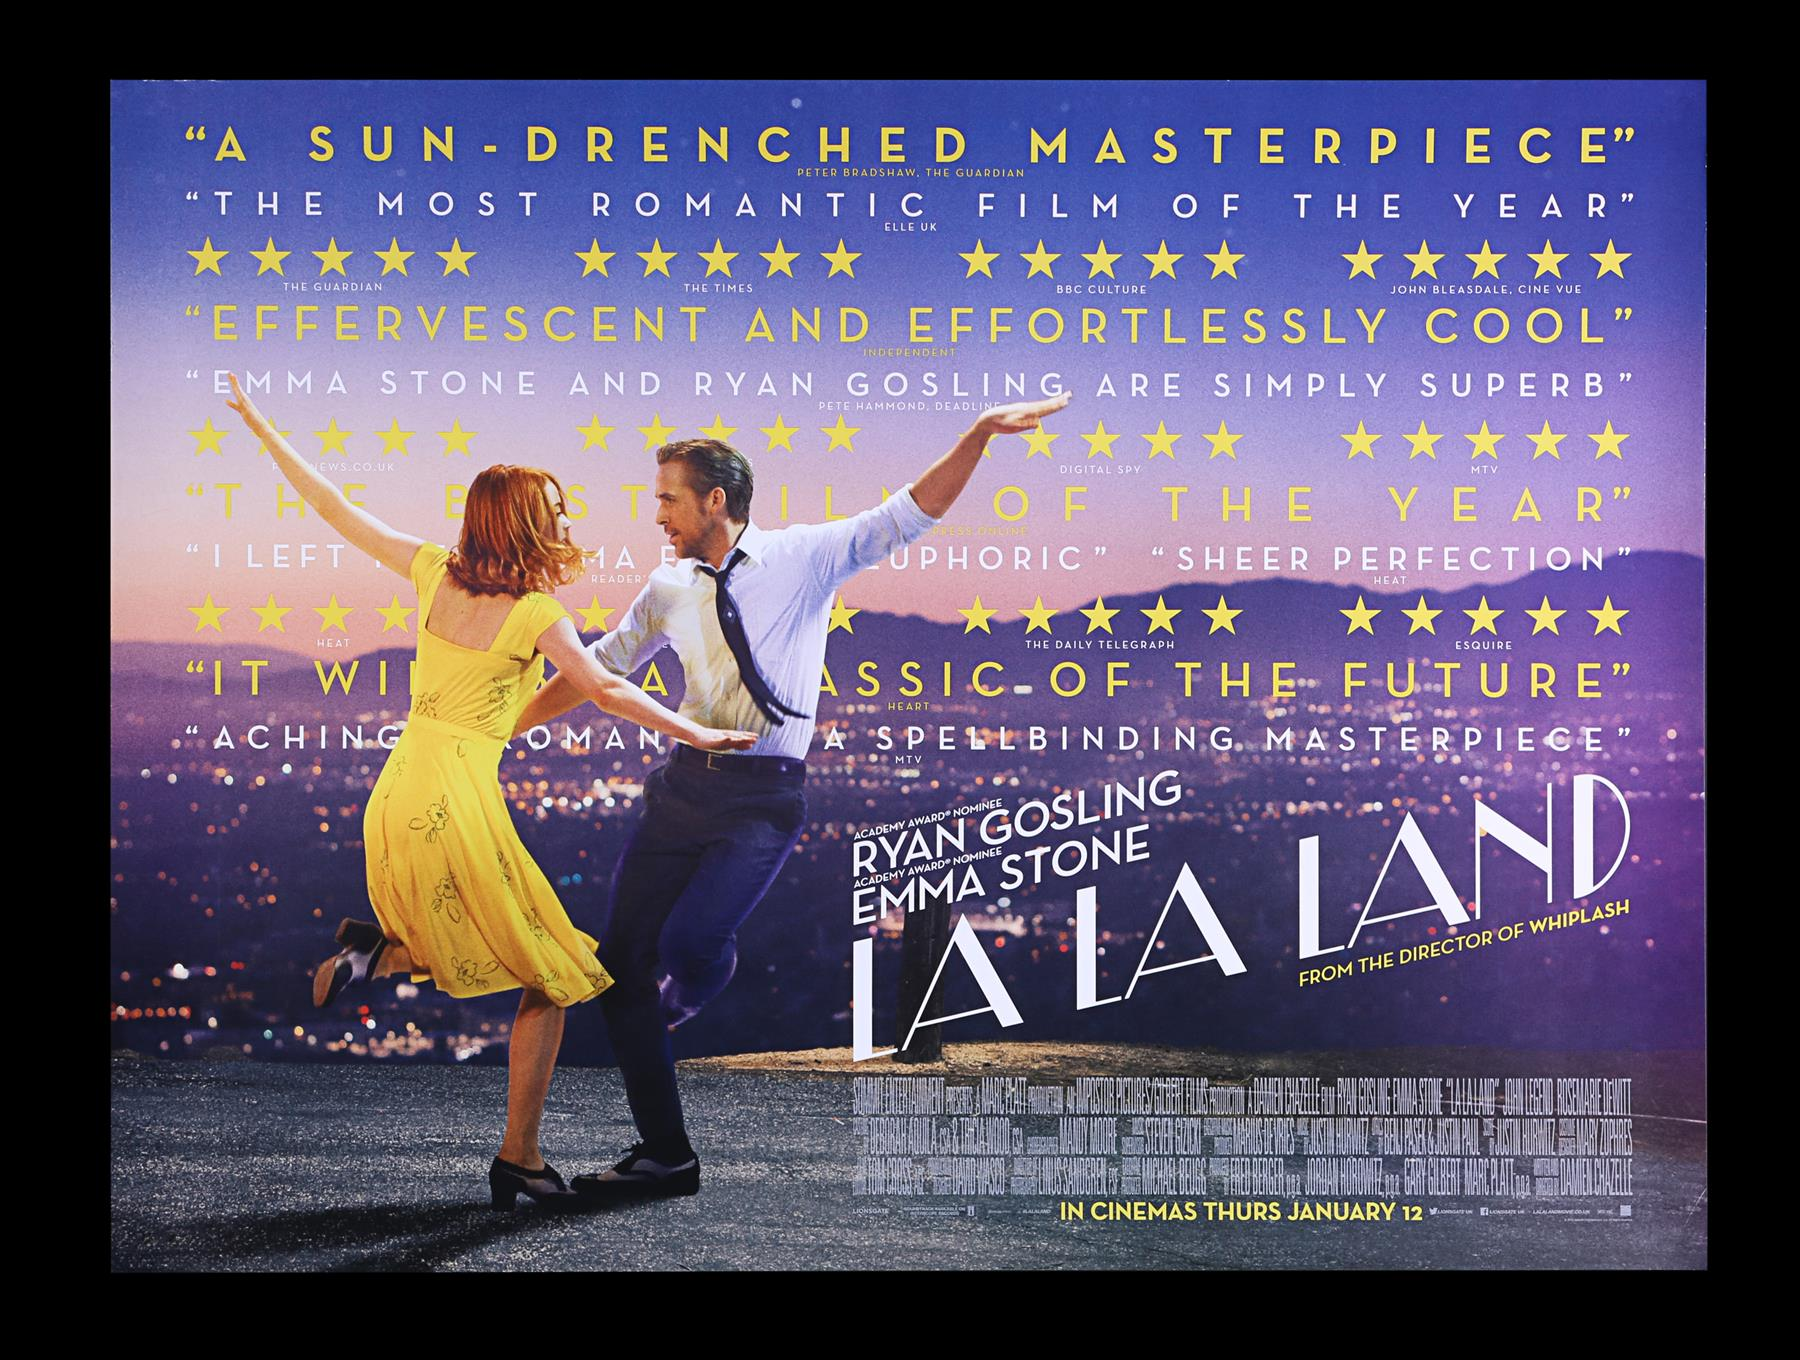 LA LA LAND (2016) - Two UK Quads and One-Sheet, 2016 - Image 4 of 7